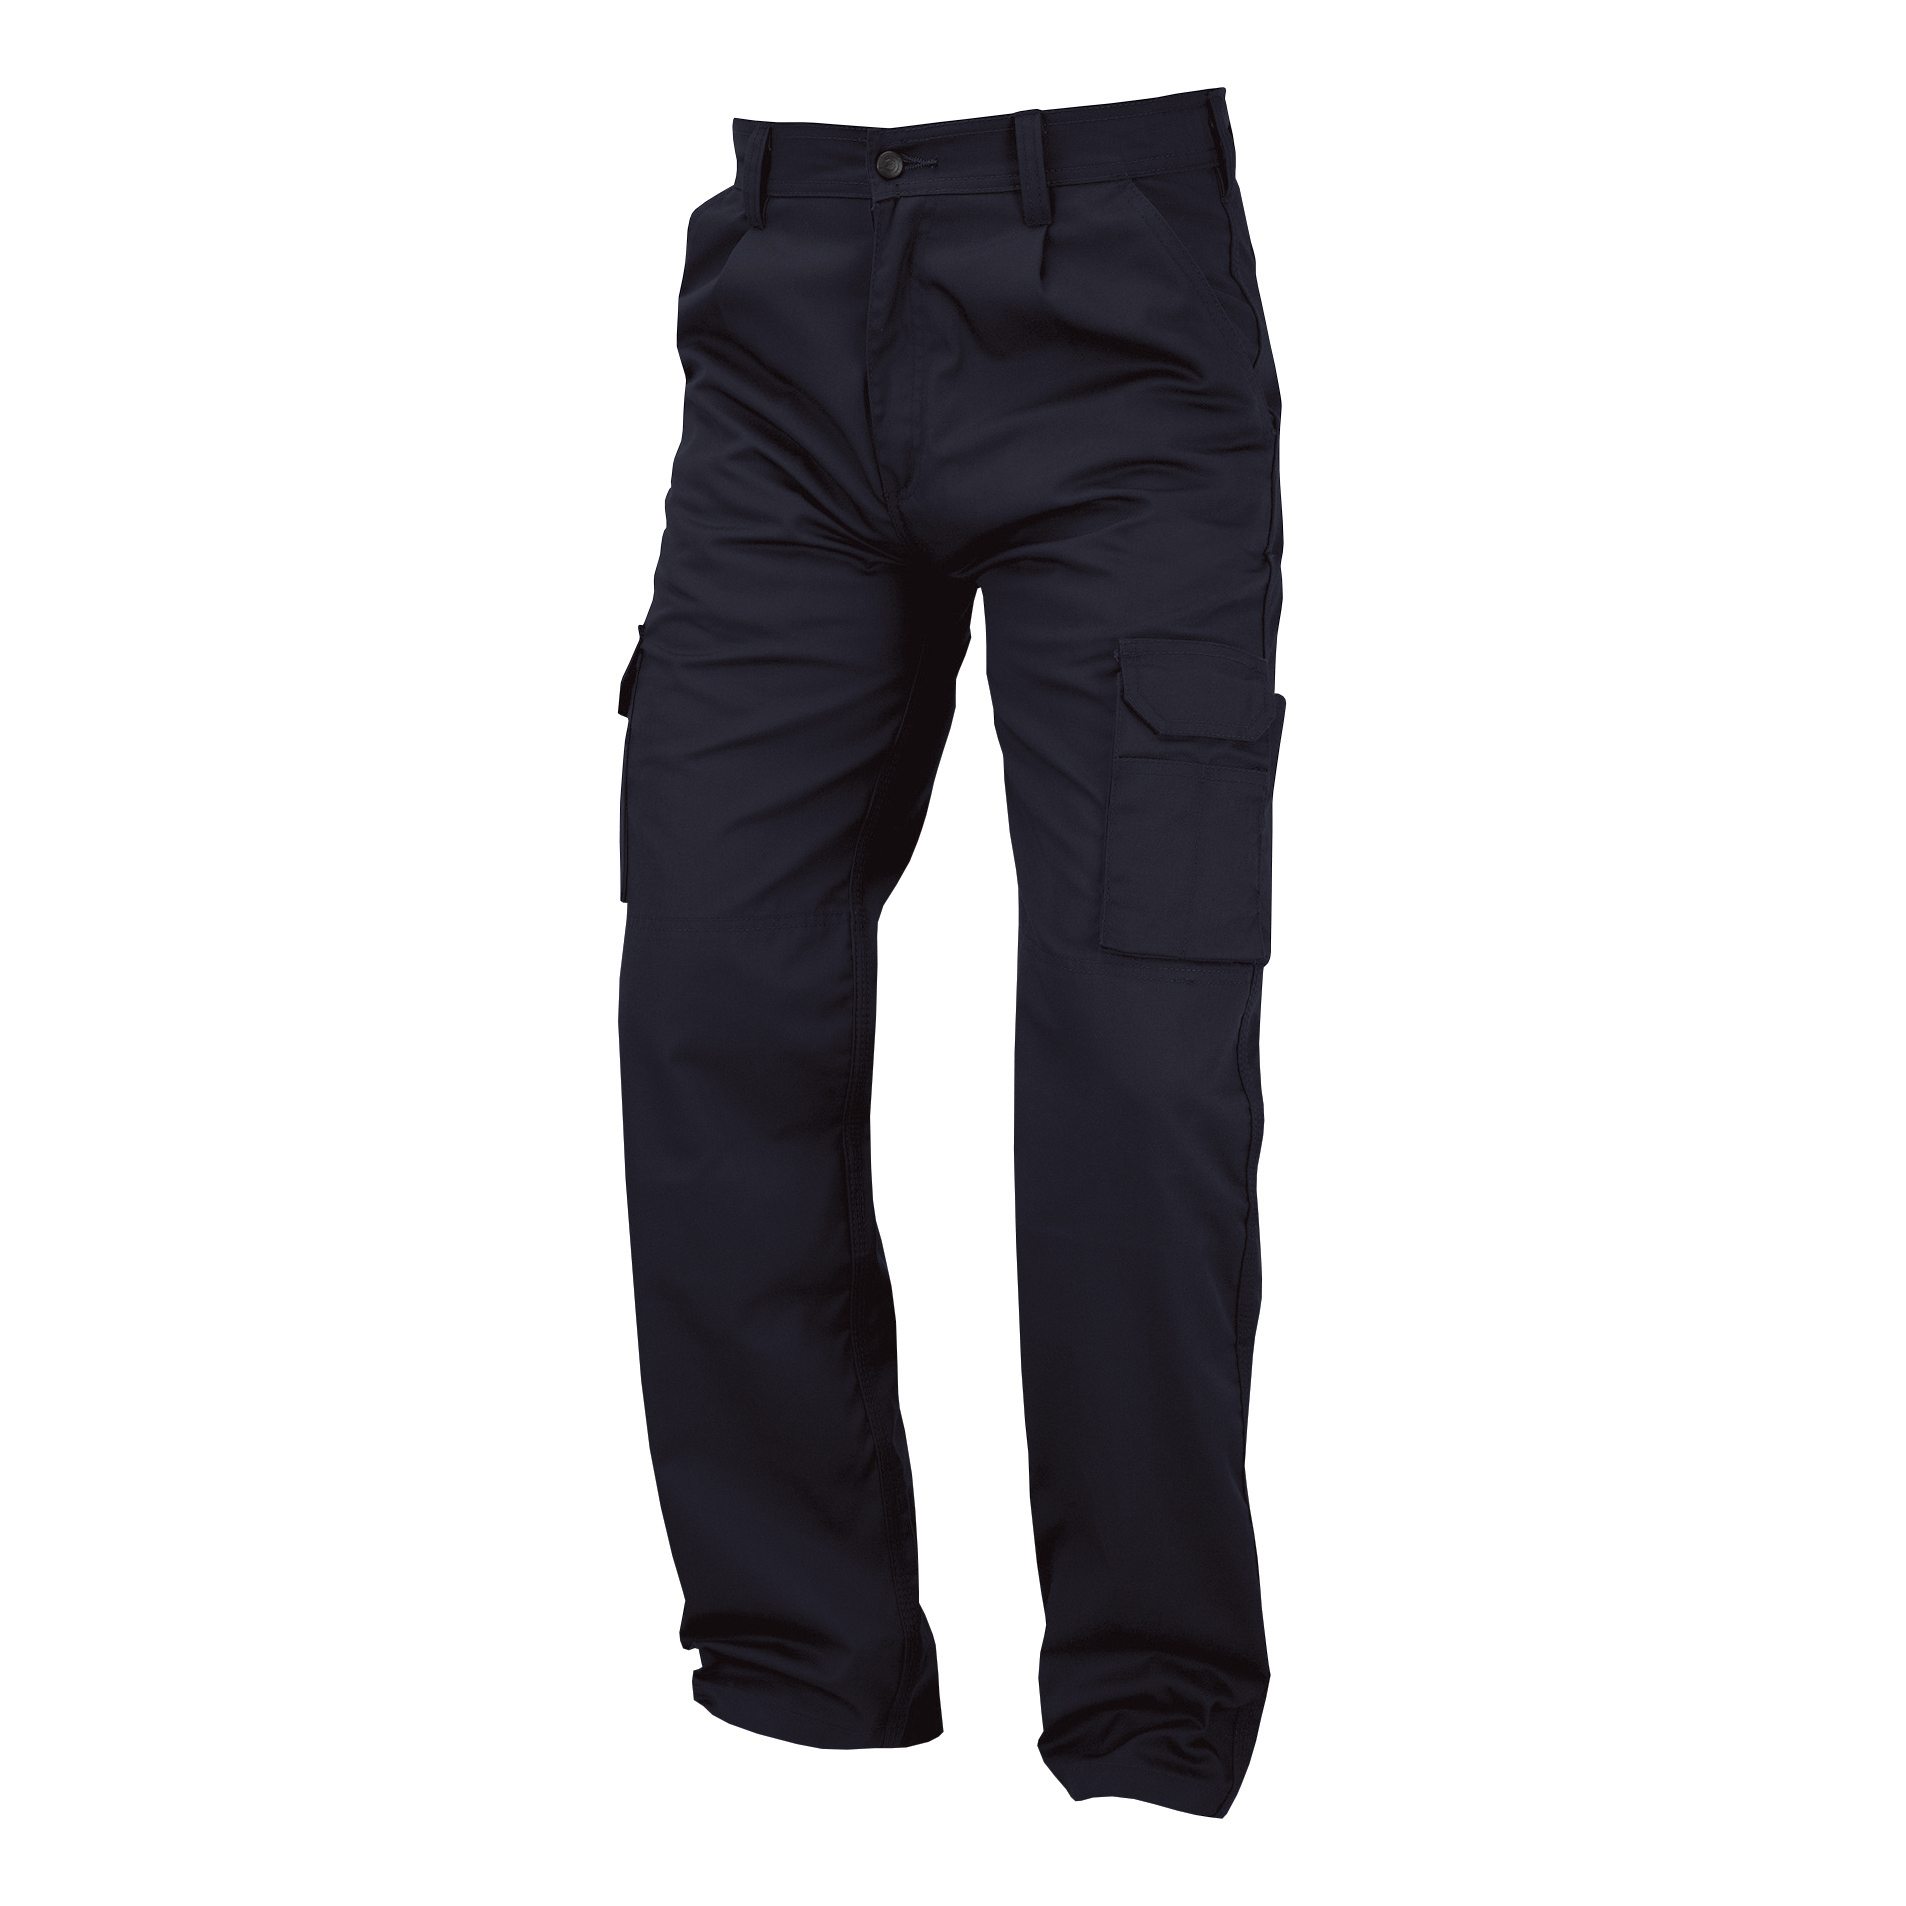 Combat Trouser Multi-functional Waist 40in Leg 29in Navy Ref PCTHWN40S *Approx 3 Day Leadtime*